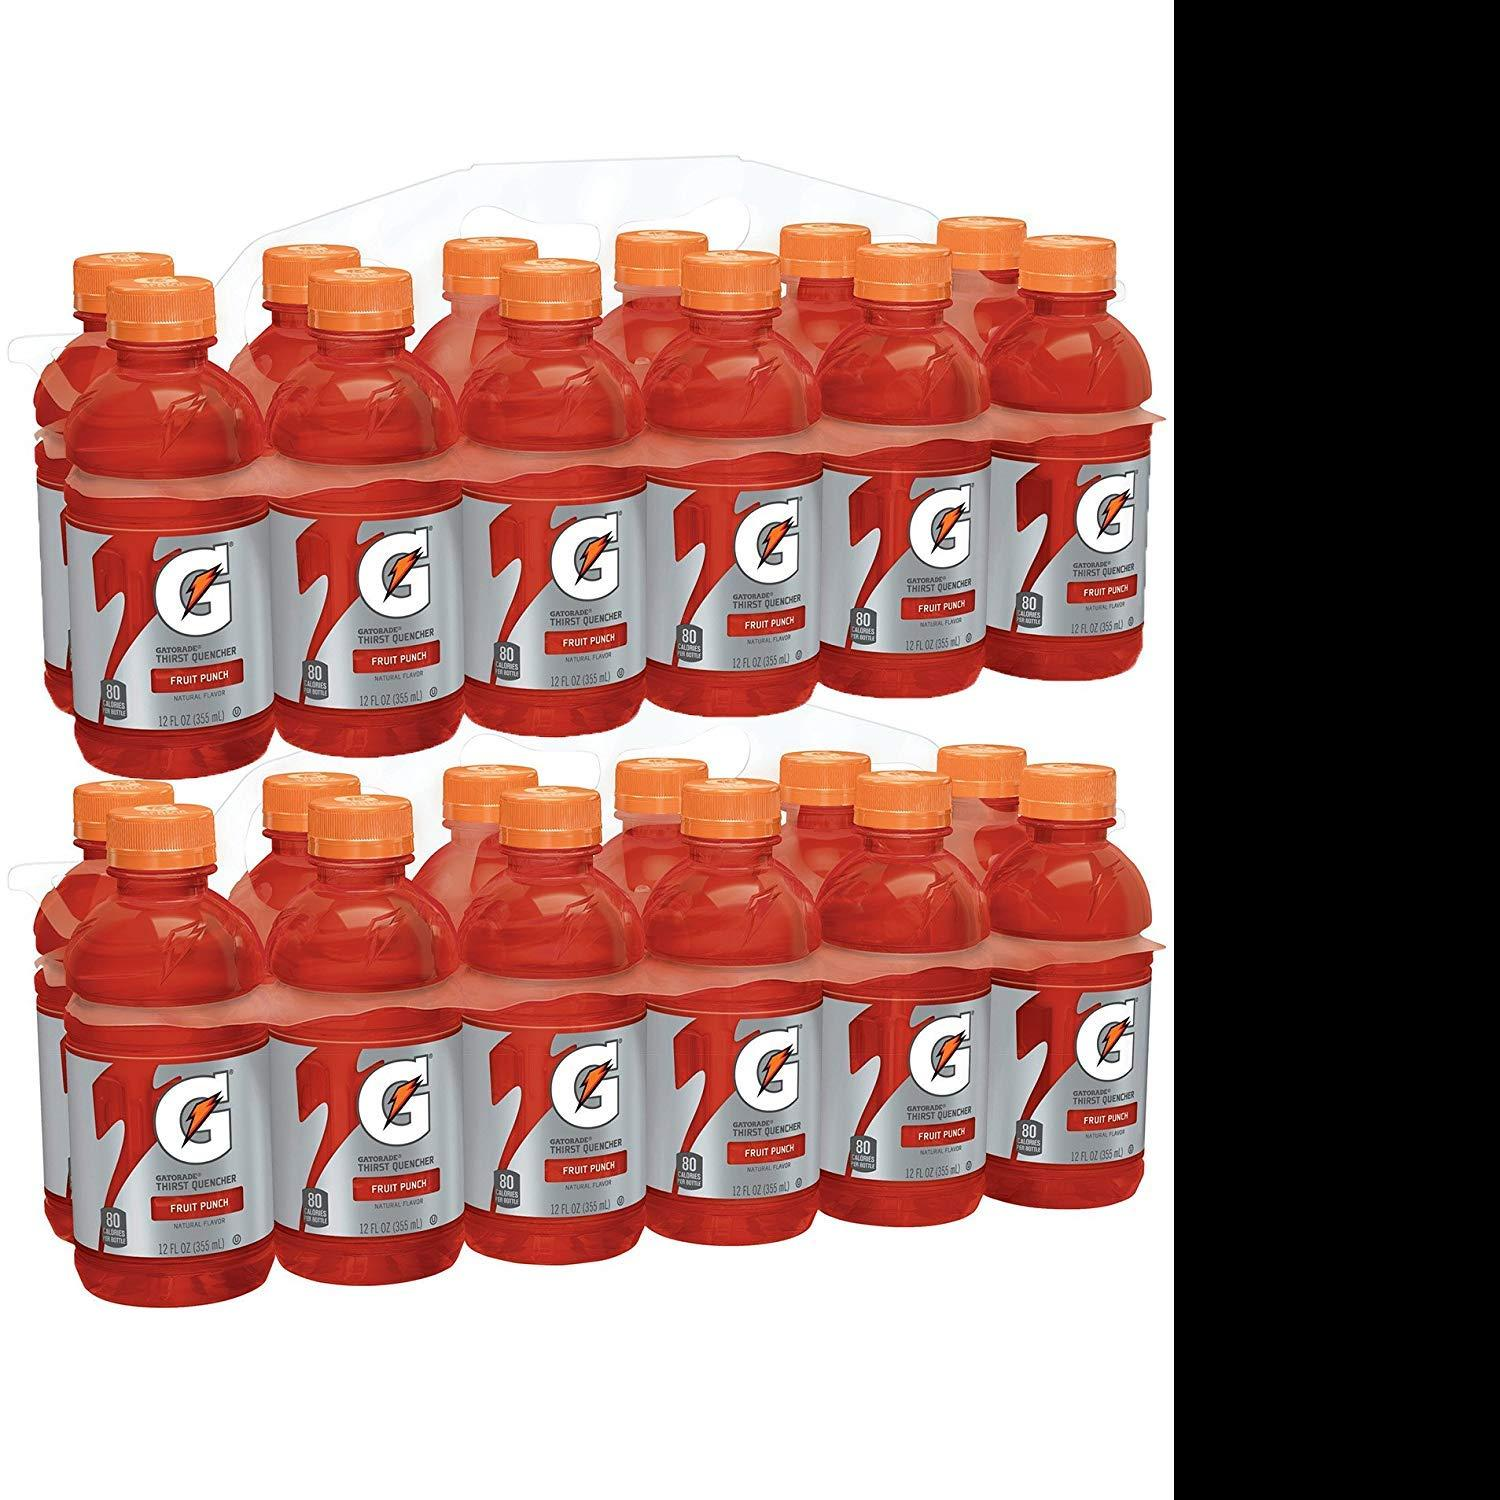 24 Gatorade Fruit Punch Sports Drink for $8.94 Shipped